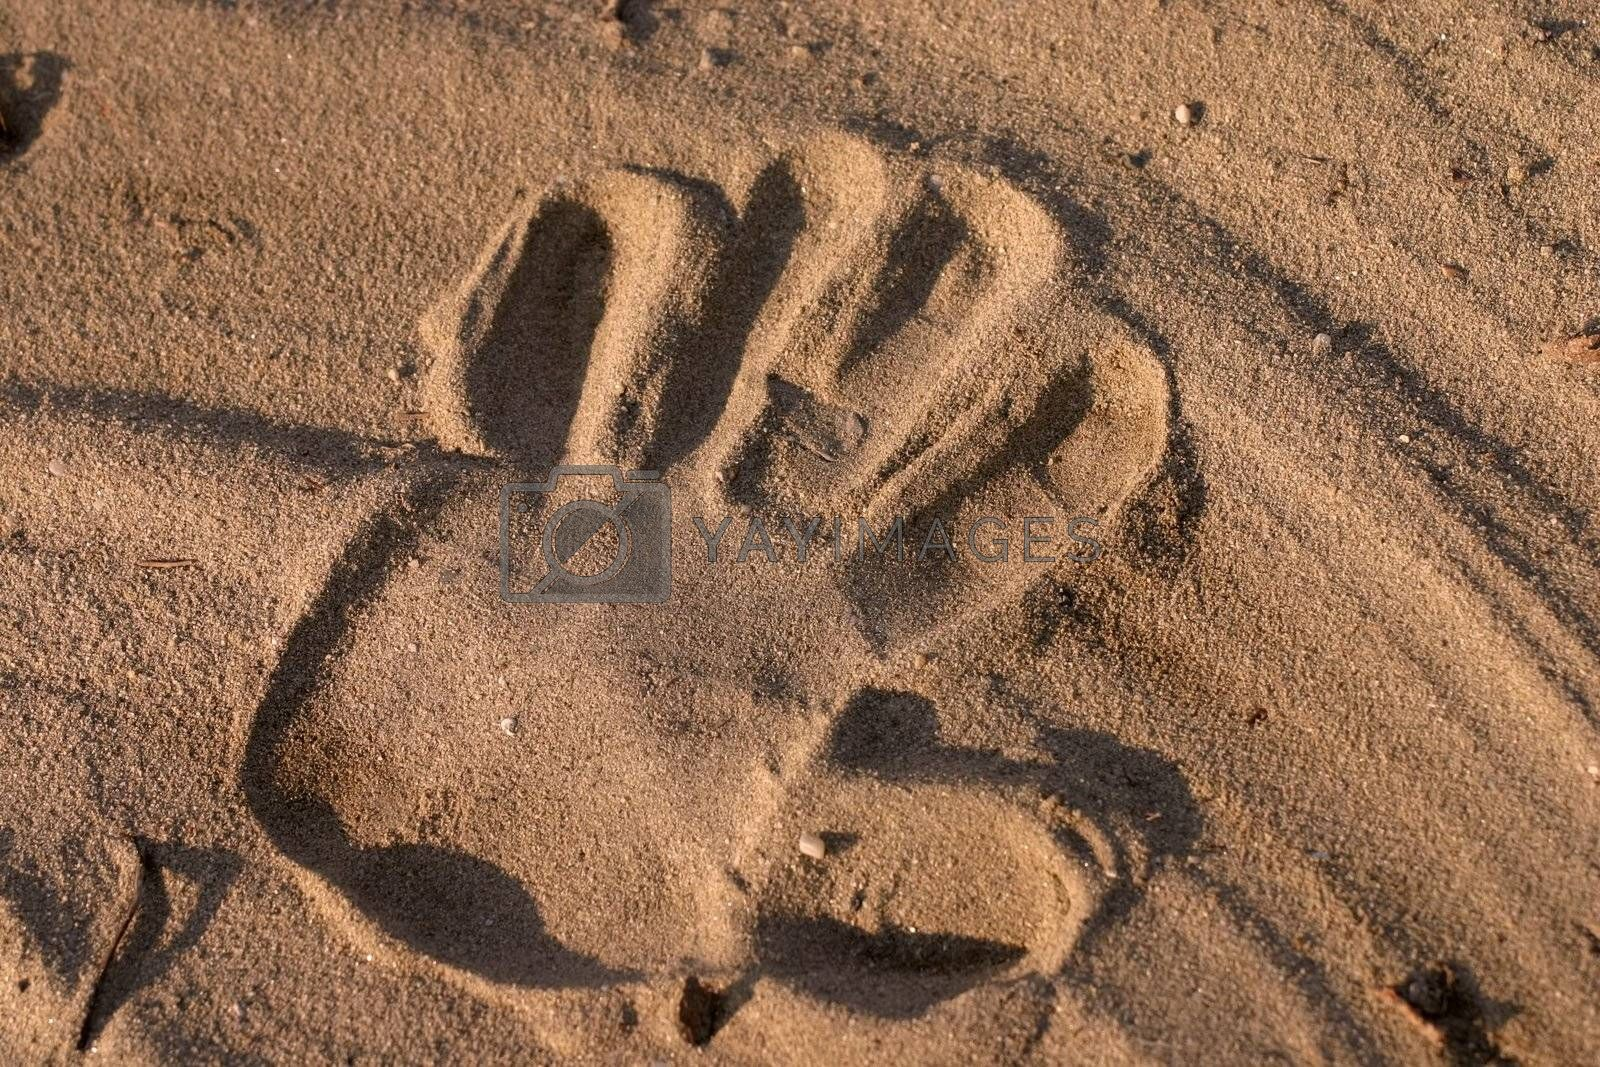 Hand print in sand with low sun